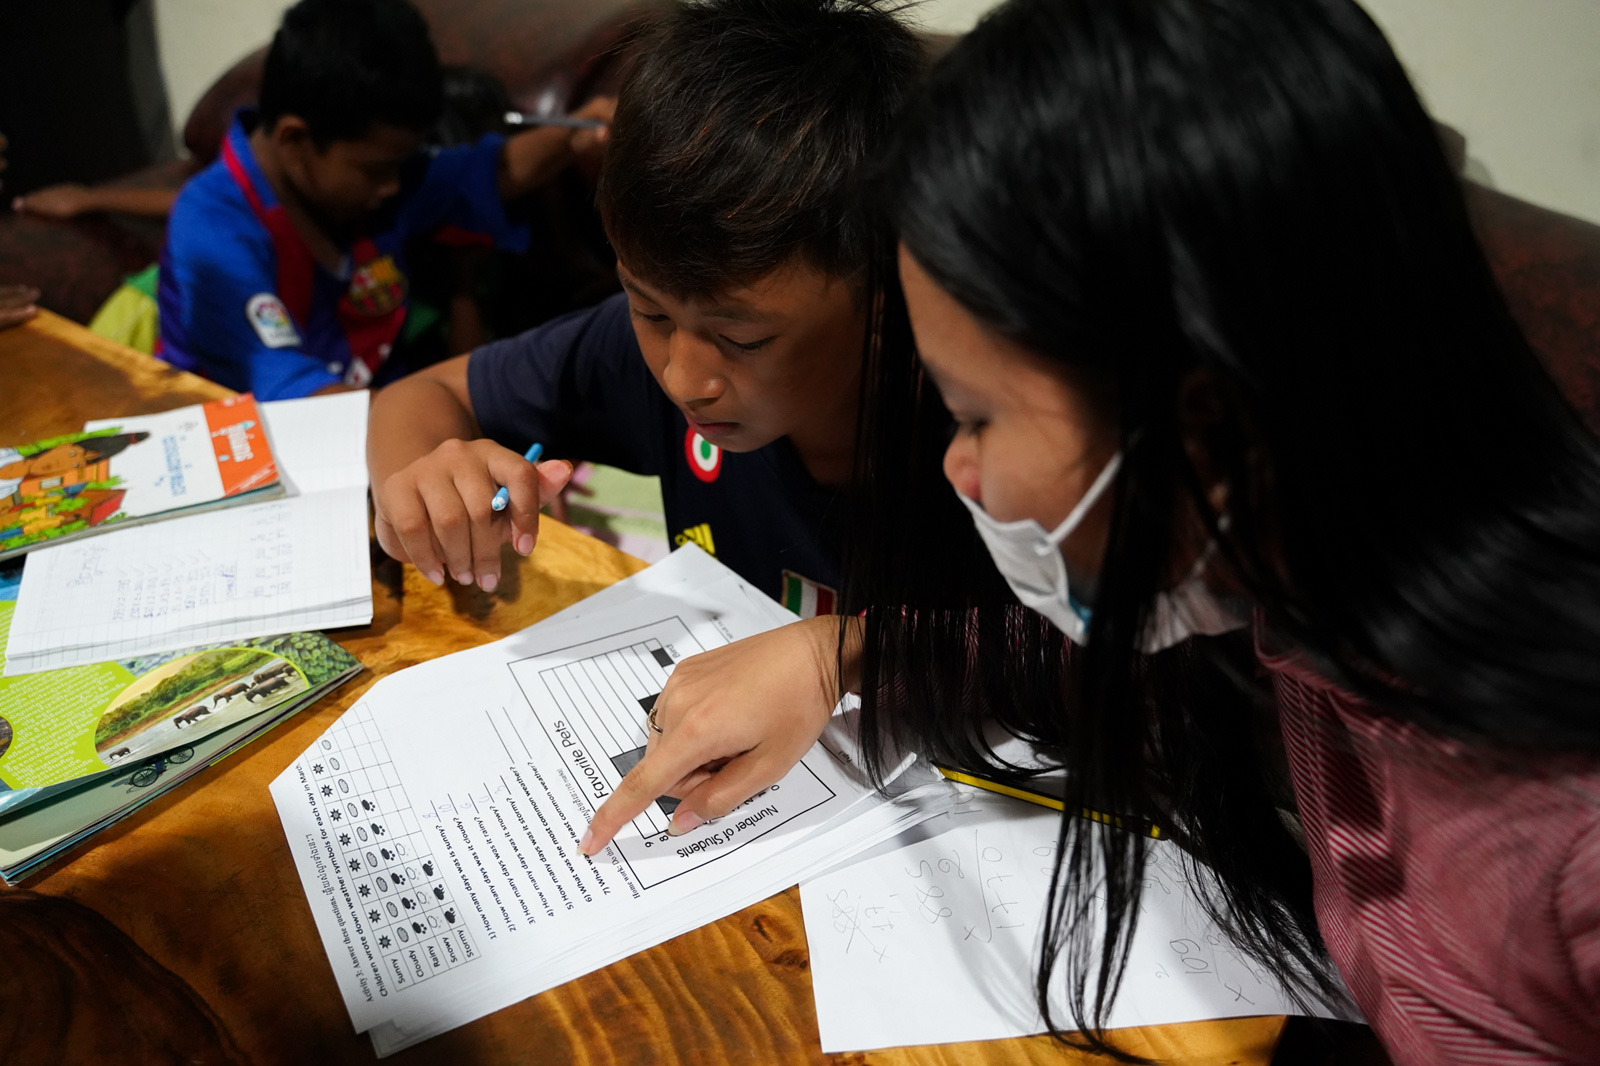 A student teacher helps a younger student with a worksheet from school.